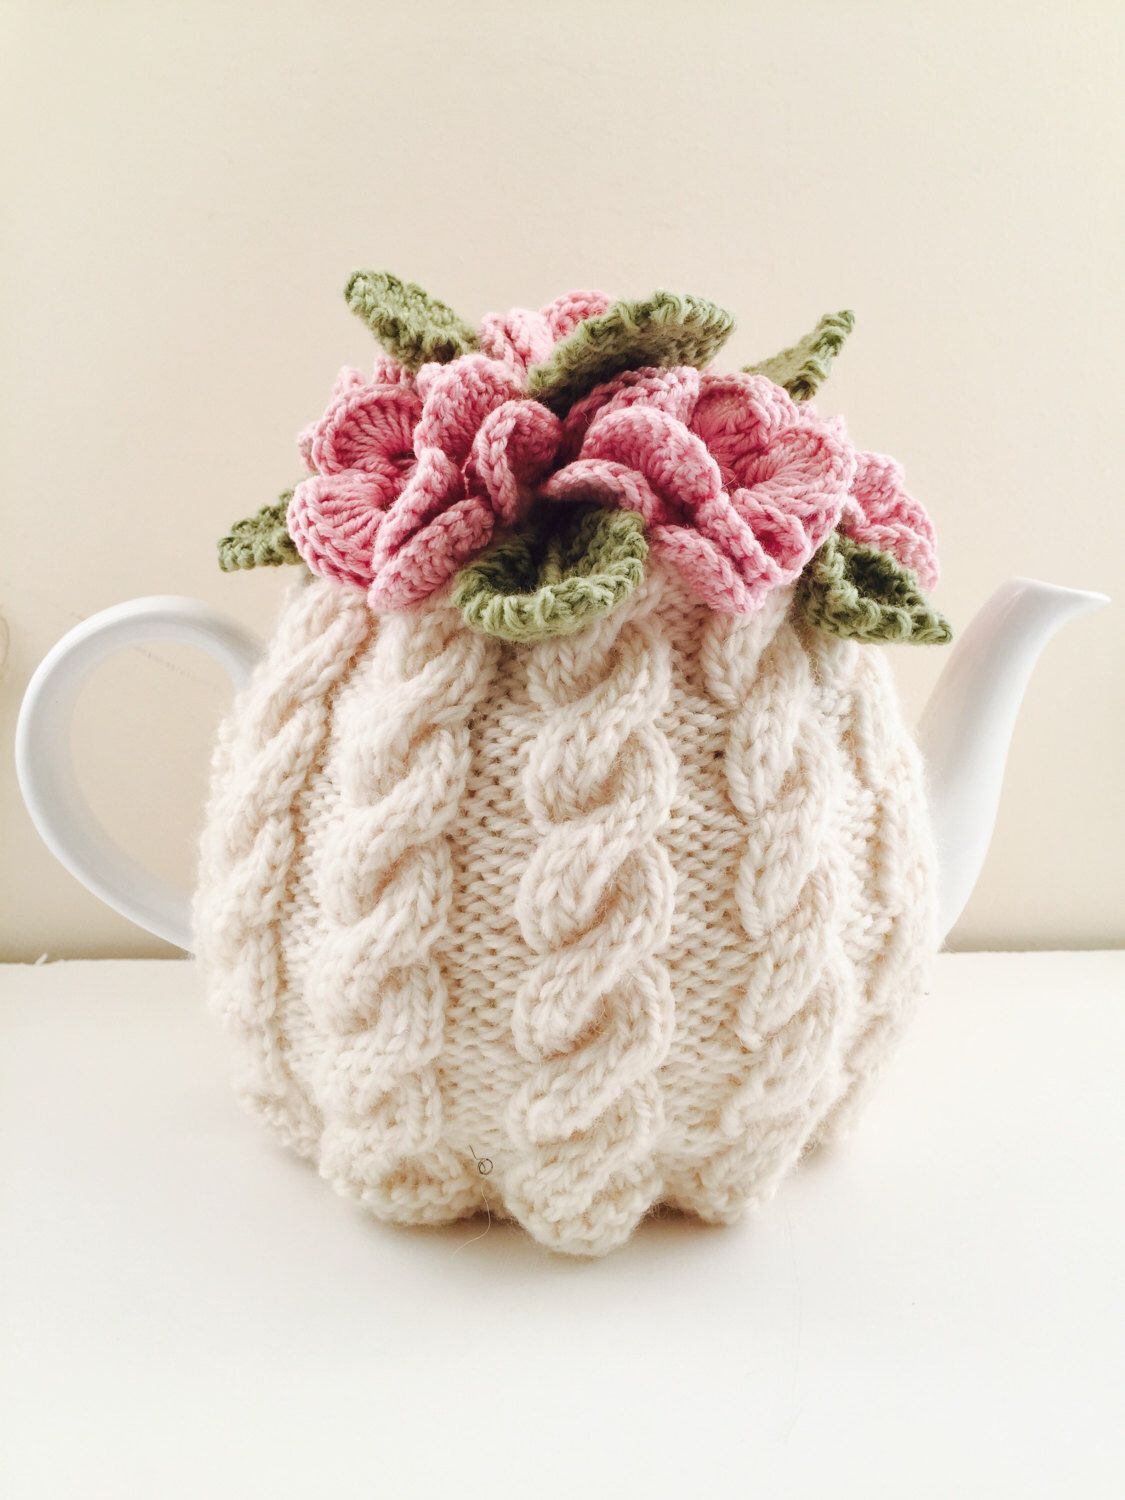 Floral Cabled Tea Cosy - Cream & Pink - Size Medium - fits 6-cup teapots